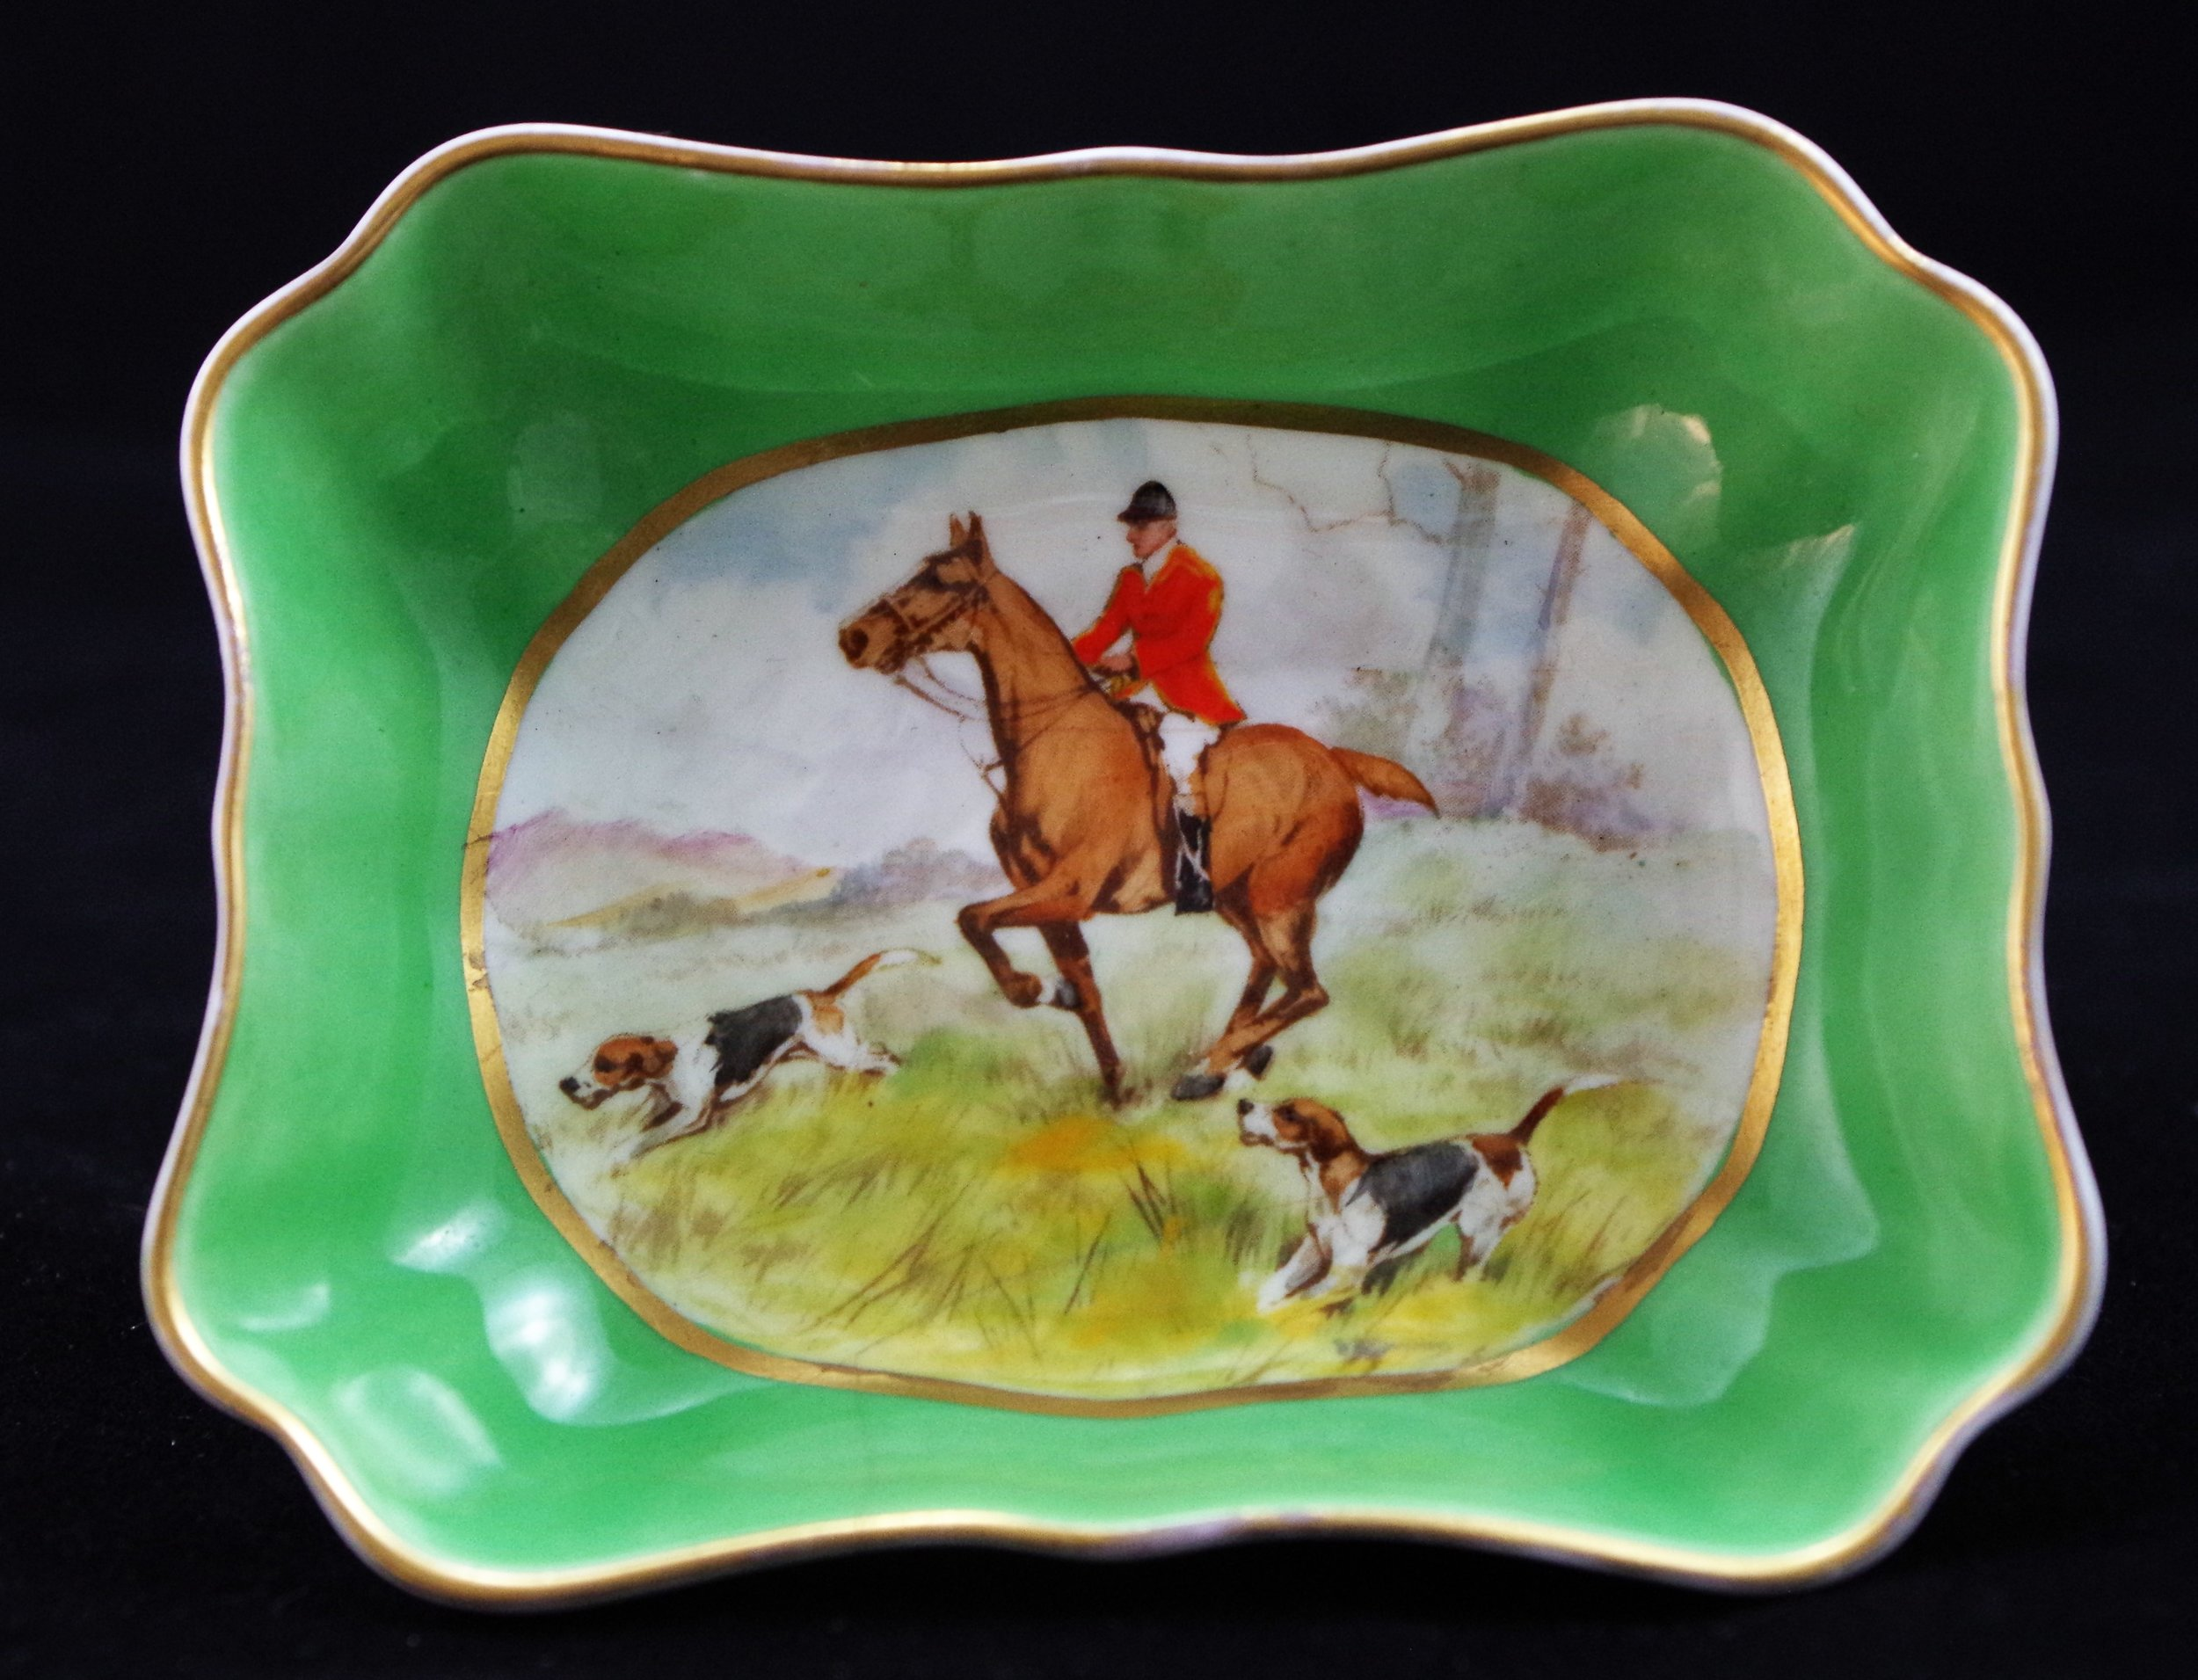 royal-crown-derby-oblong-tray-1800-green-ground-hunting-scene